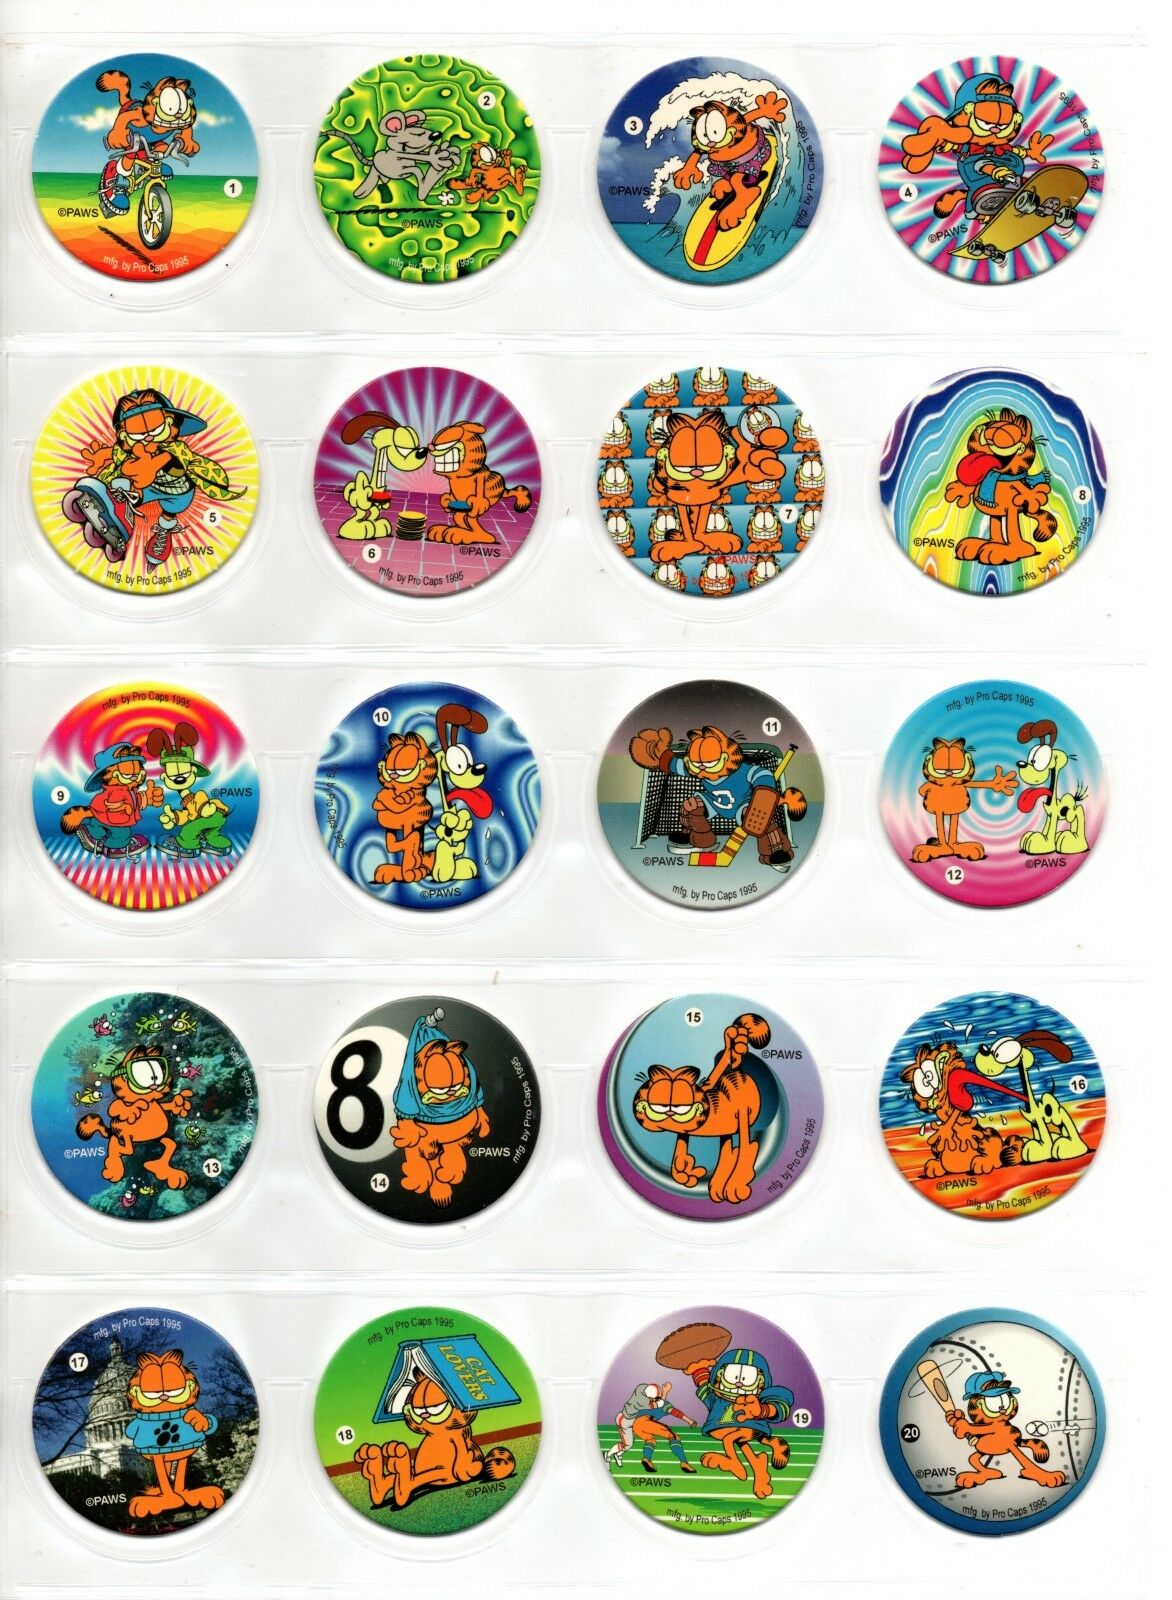 GARFIELD AND FRIENDS Tazos Pogs Complete Toys set of 90 VINTAGE TOY COLLECTION